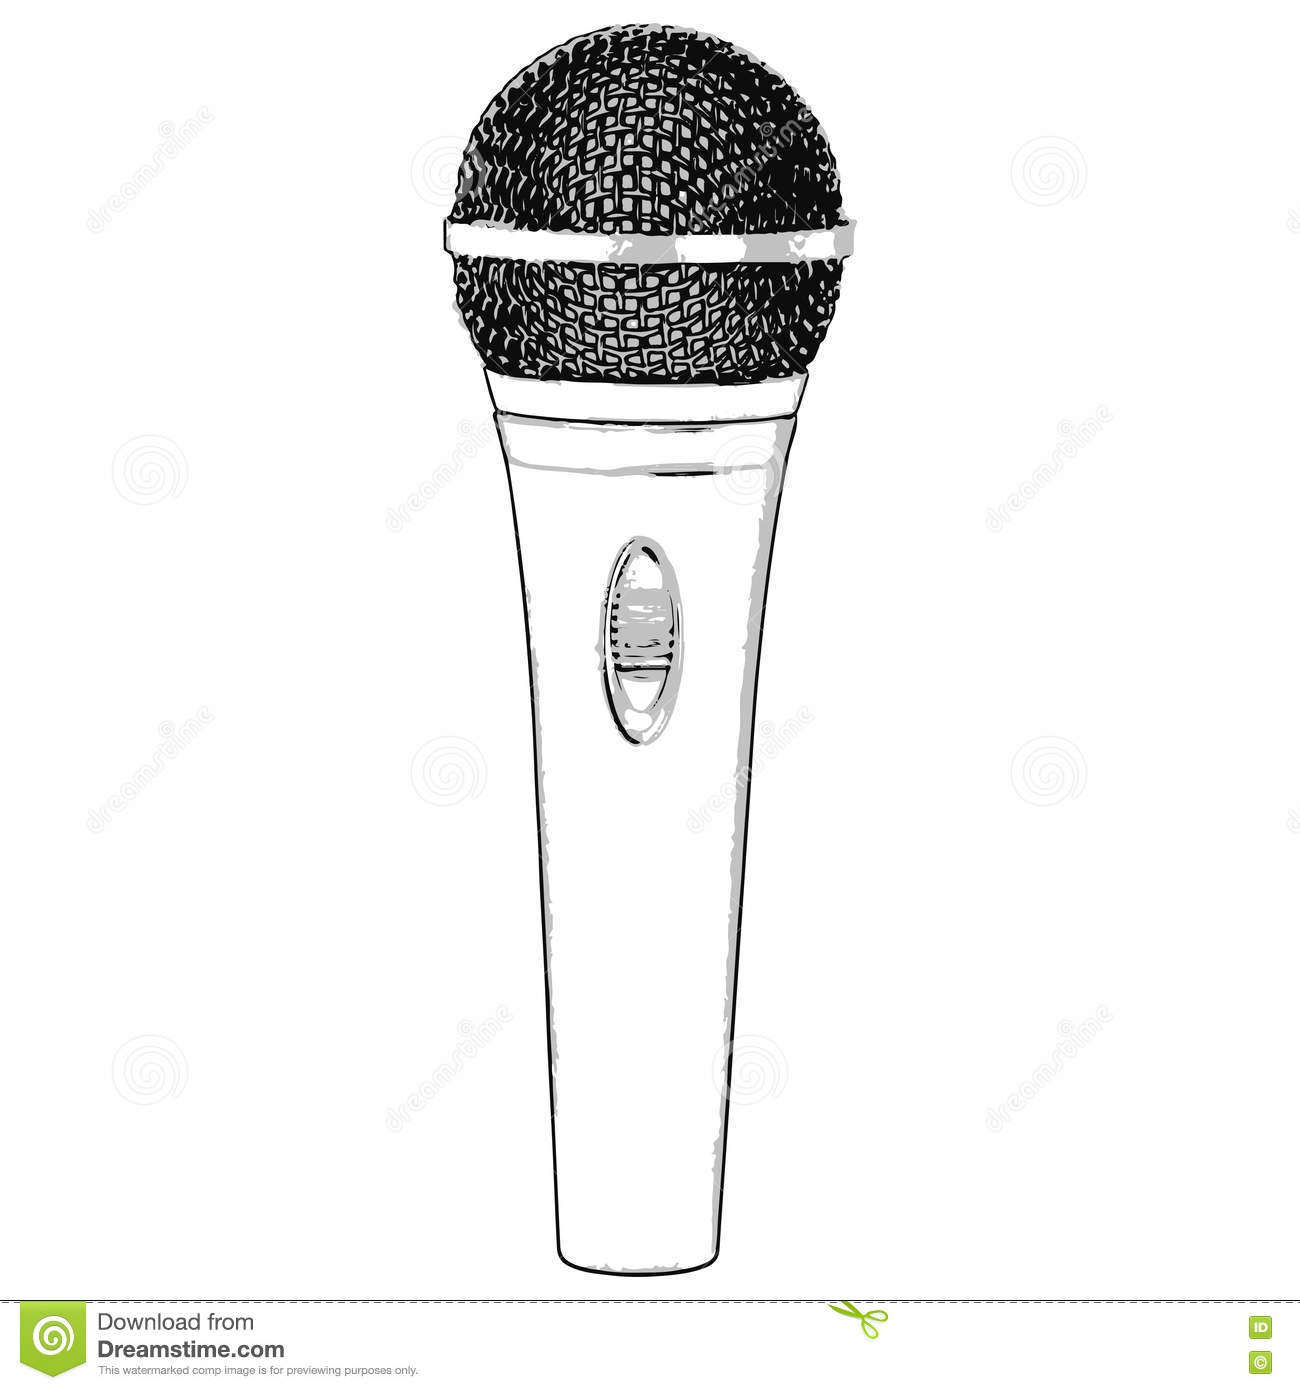 how to draw a microphone step by step easy